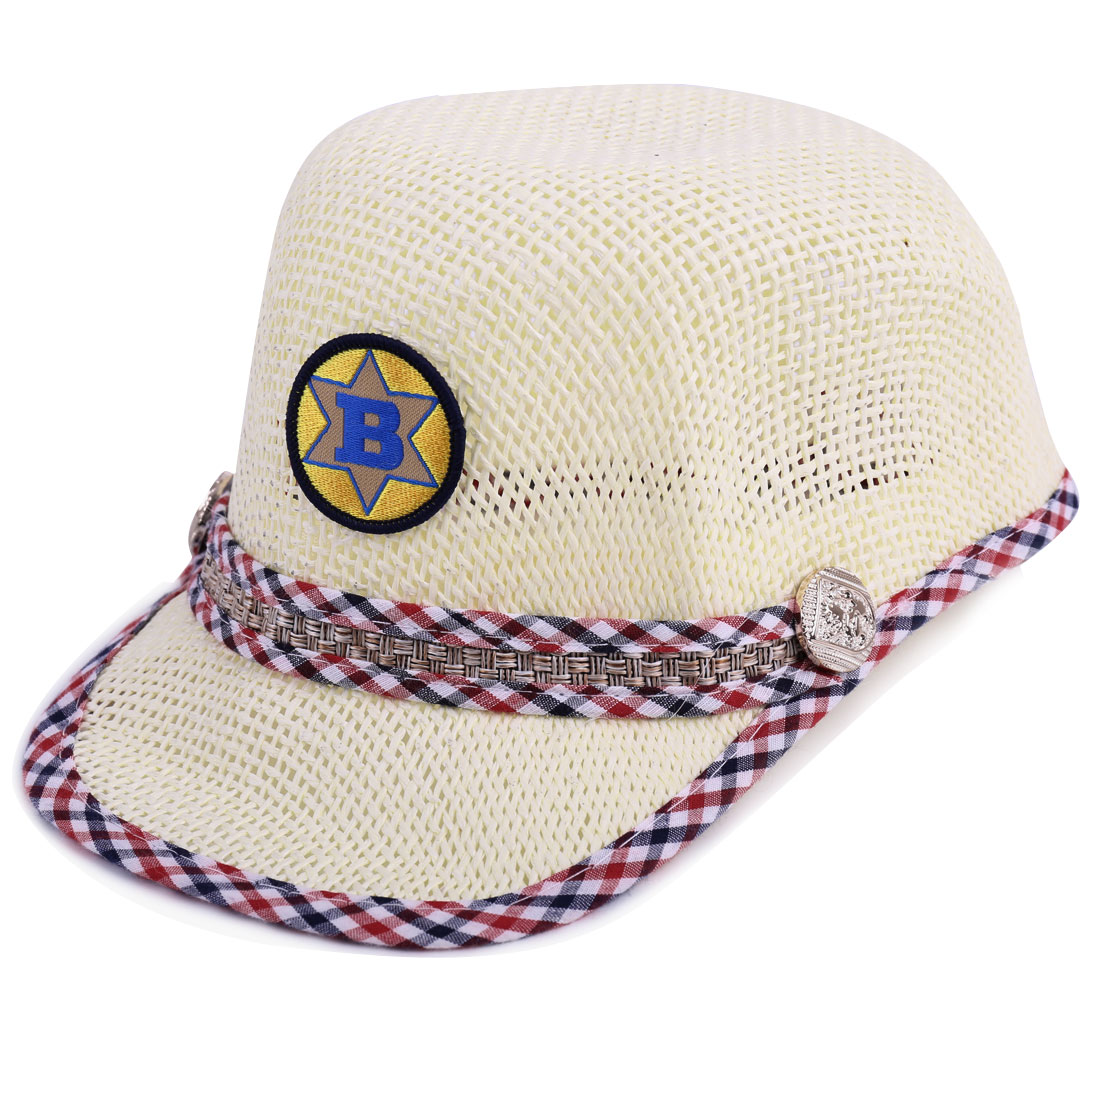 Tasharina Unisex Children Button Decor Stitching Straw Baseball Cap Off-White